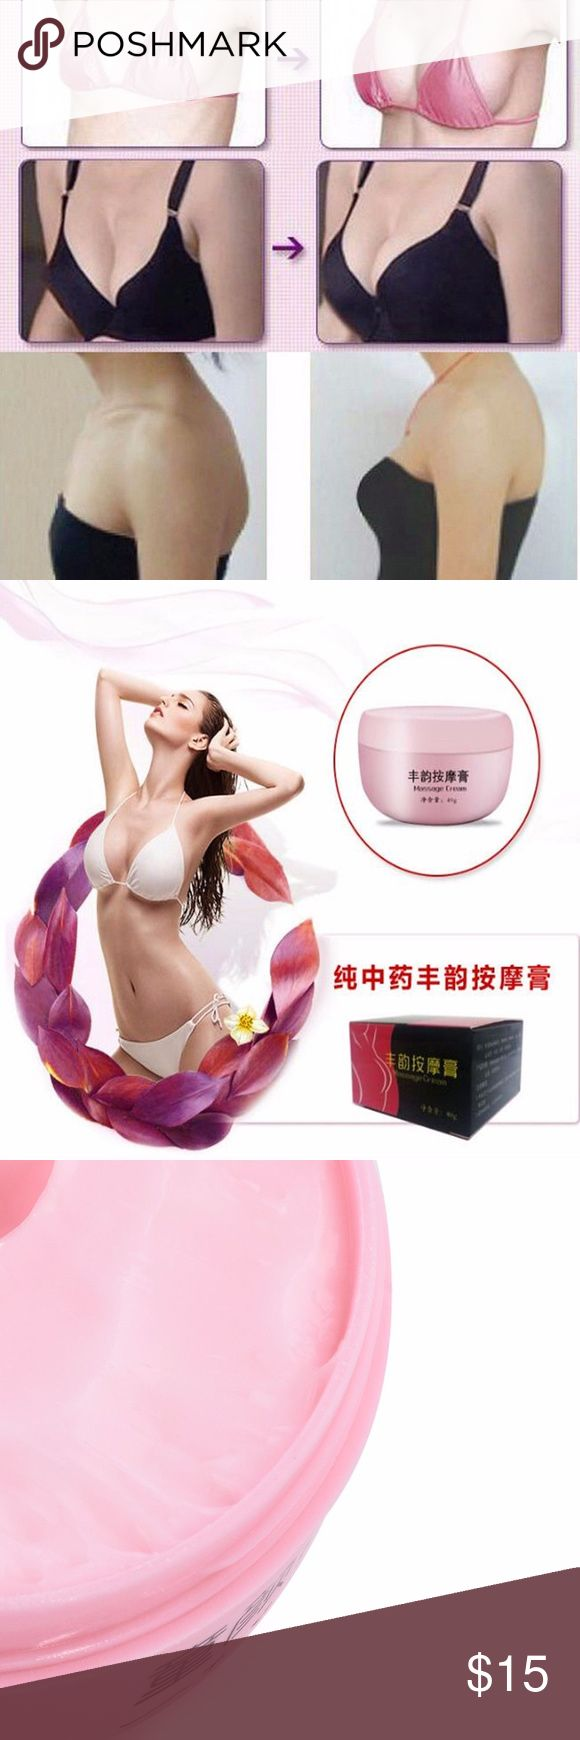 Breast-Massage-Cream-Chest-UP-Cream-Breast- ngredients : Pueraria plant essence, vitamin E, vitamin C, ginseng, Chinese angelica, motherwort, red flower Product role: to provide a variety of nutrition for the chest, improve the chest curve, make skin smooth, more texture. Special purpose: cosmetics Use the crowd: ladies Features: easy to carry, Chinese medicine extraction, no stimulation, comfor  Type: Brest Massage Cream Gender: Women's Theme: Beauty Quantity: 1Pc Net Weight: 40g Features…